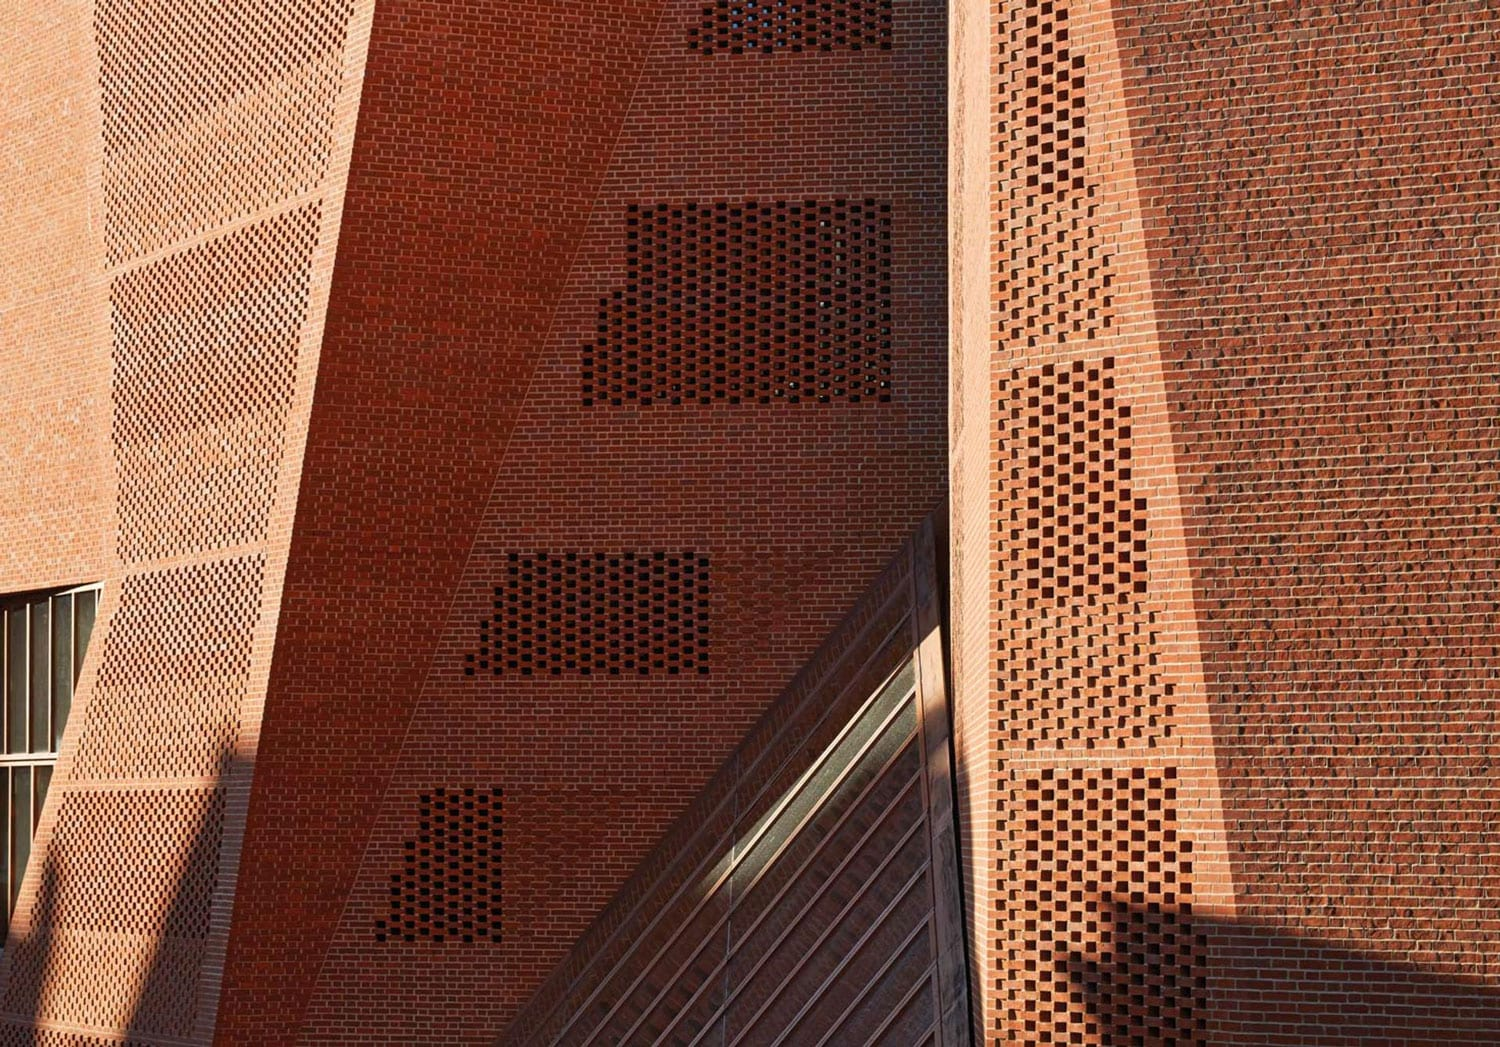 LSE Saw Hock Student Centre by O'Donnell + Tuomey Architects | Yellowtrace